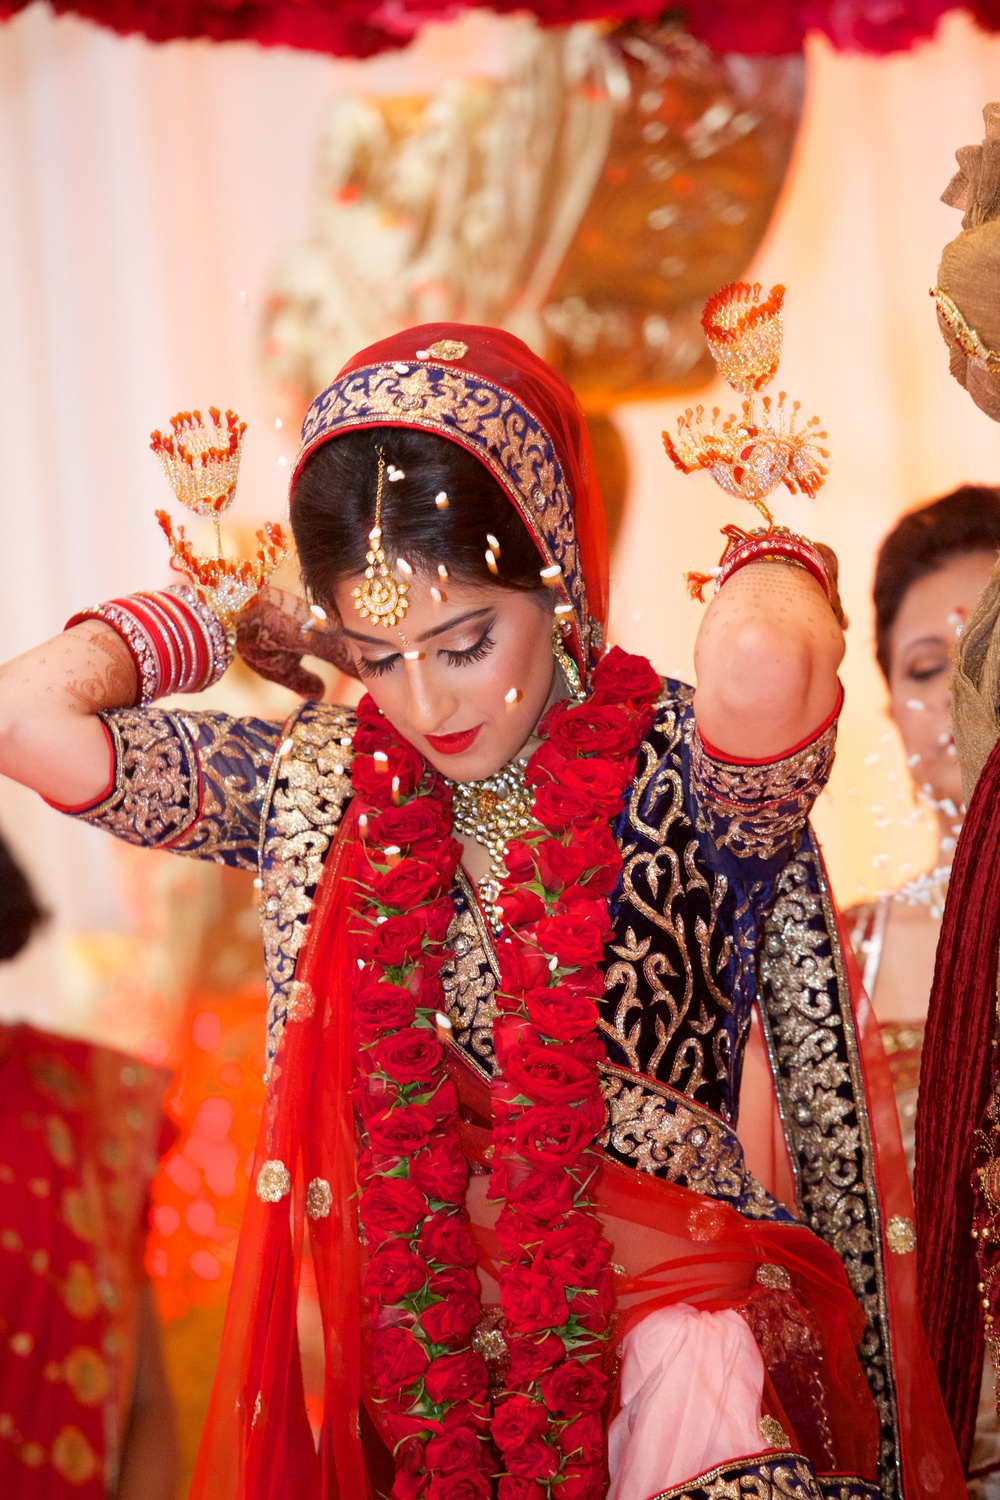 Le Cape Weddings - Indian Wedding - Day 4 - Megan and Karthik Ceremony  82.jpg